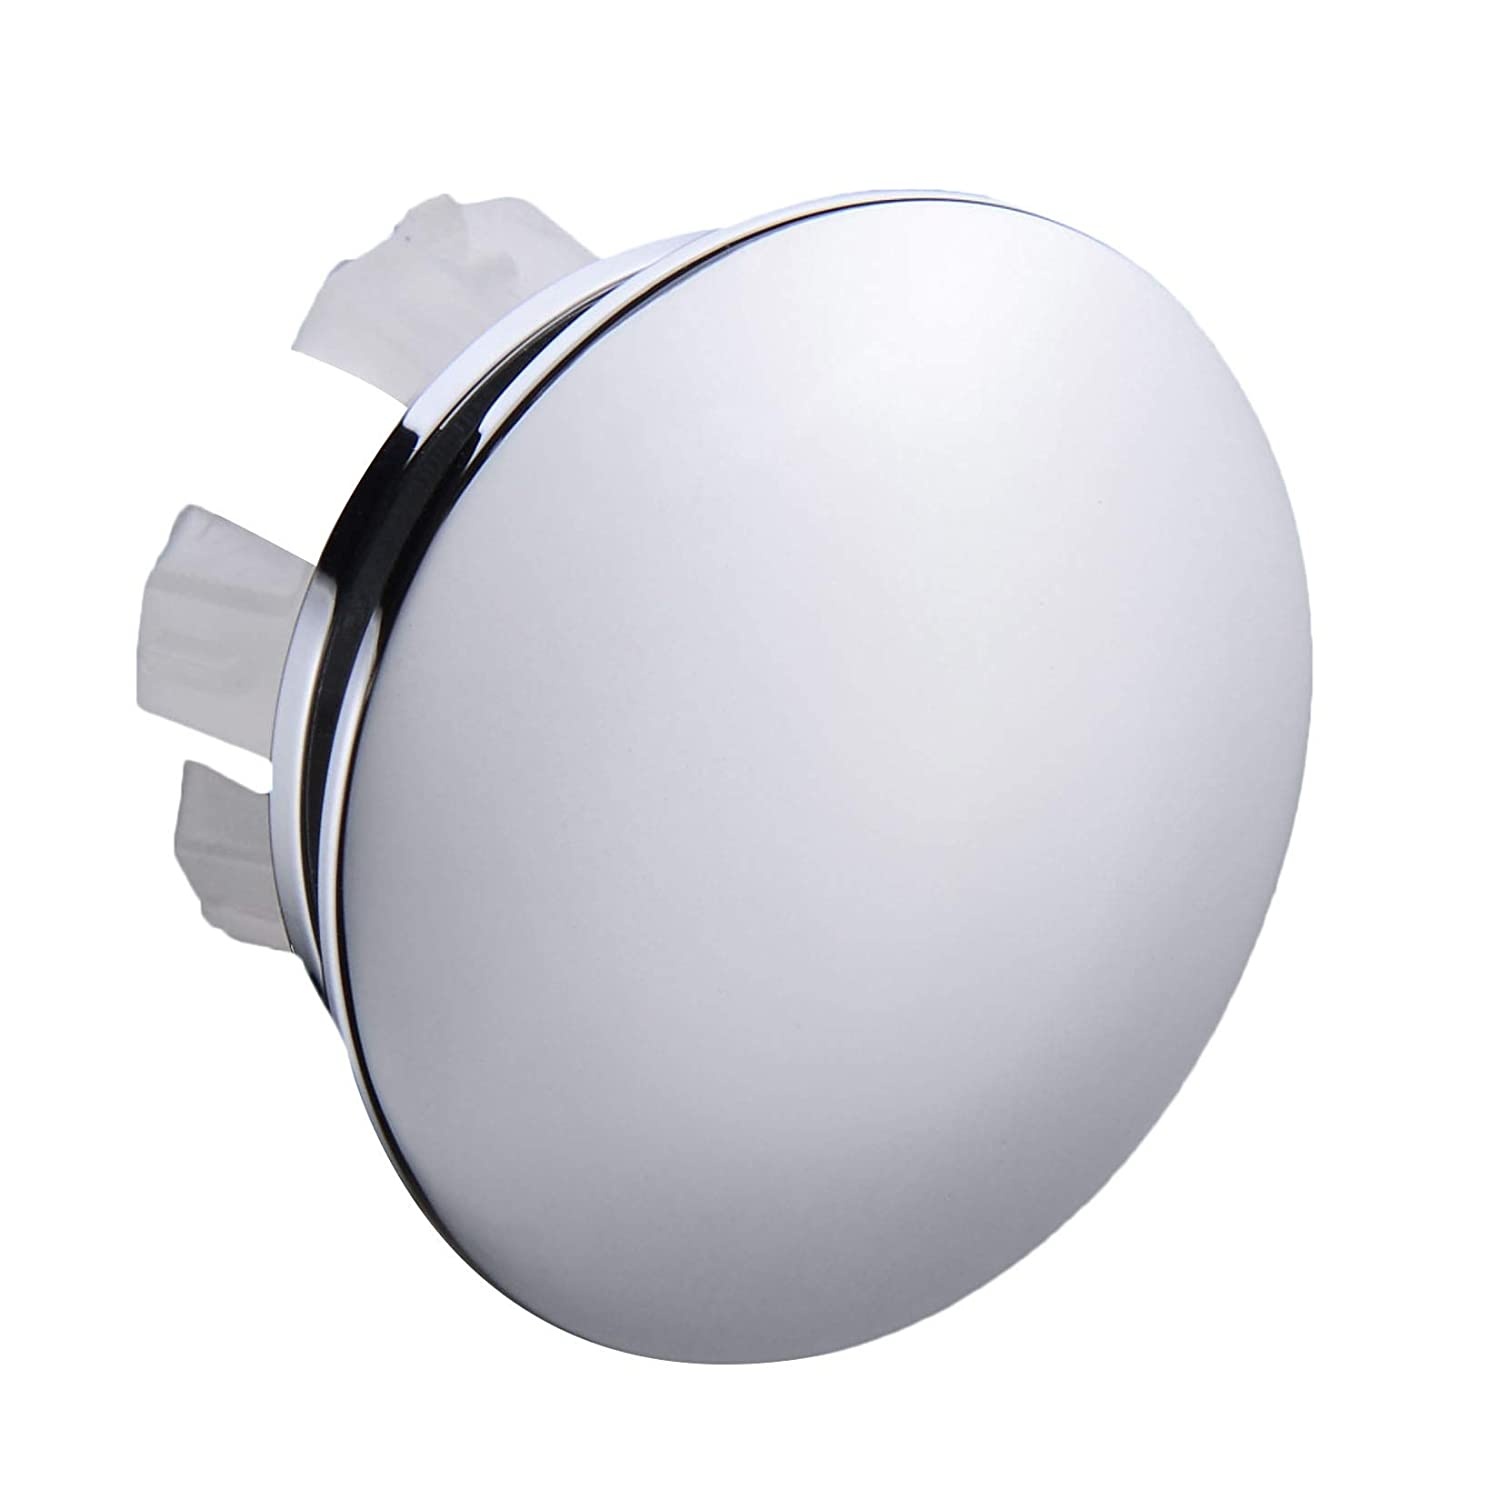 Orhemus Solid Brass Sink Overflow Cap Round Hole Cover for Bathroom Basin, Polished Chrome Finished